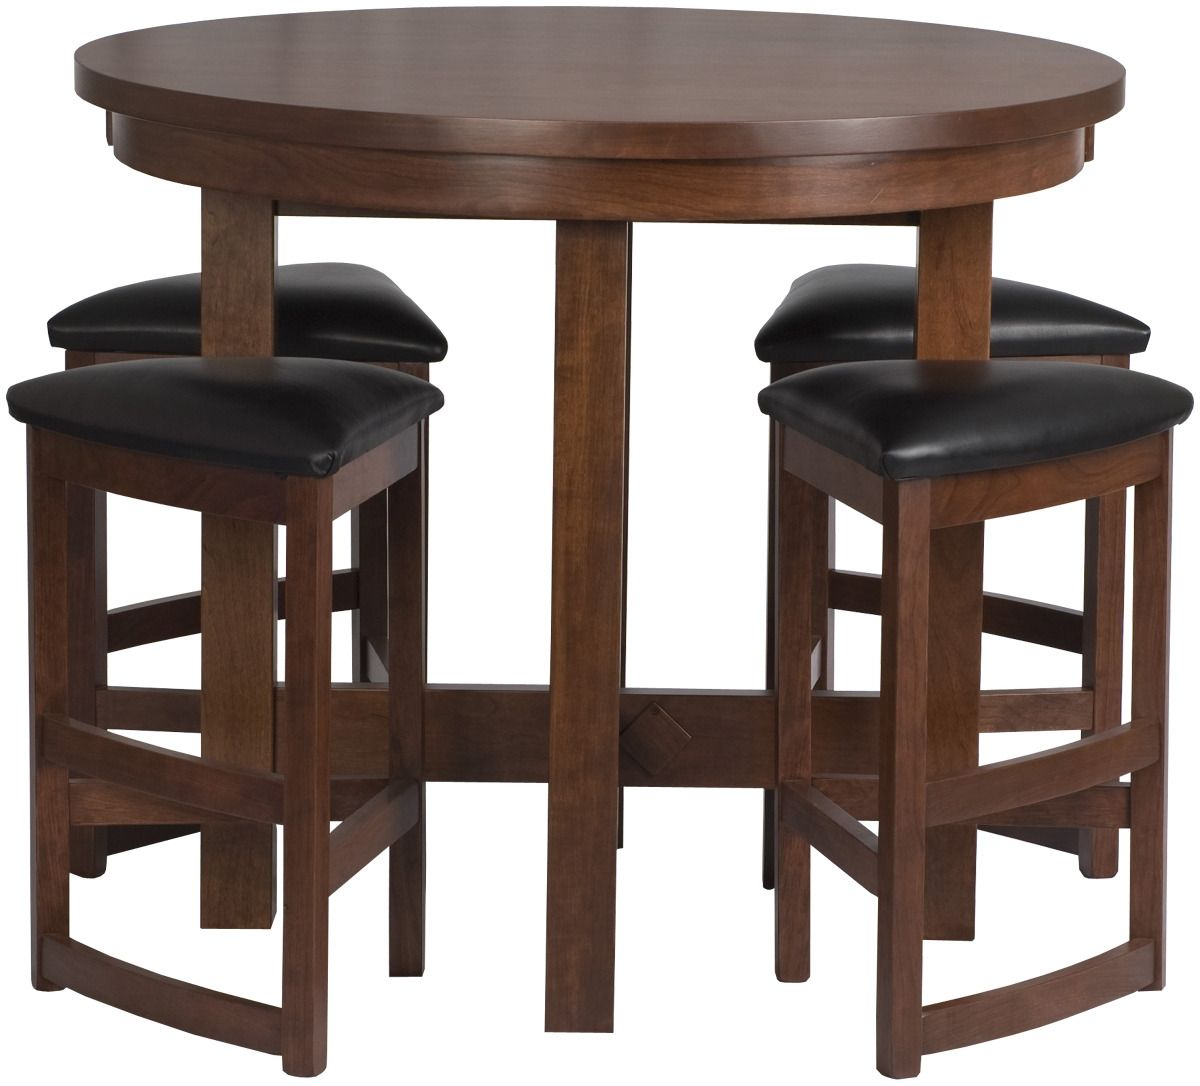 100 round table with triangle chairs  best home office